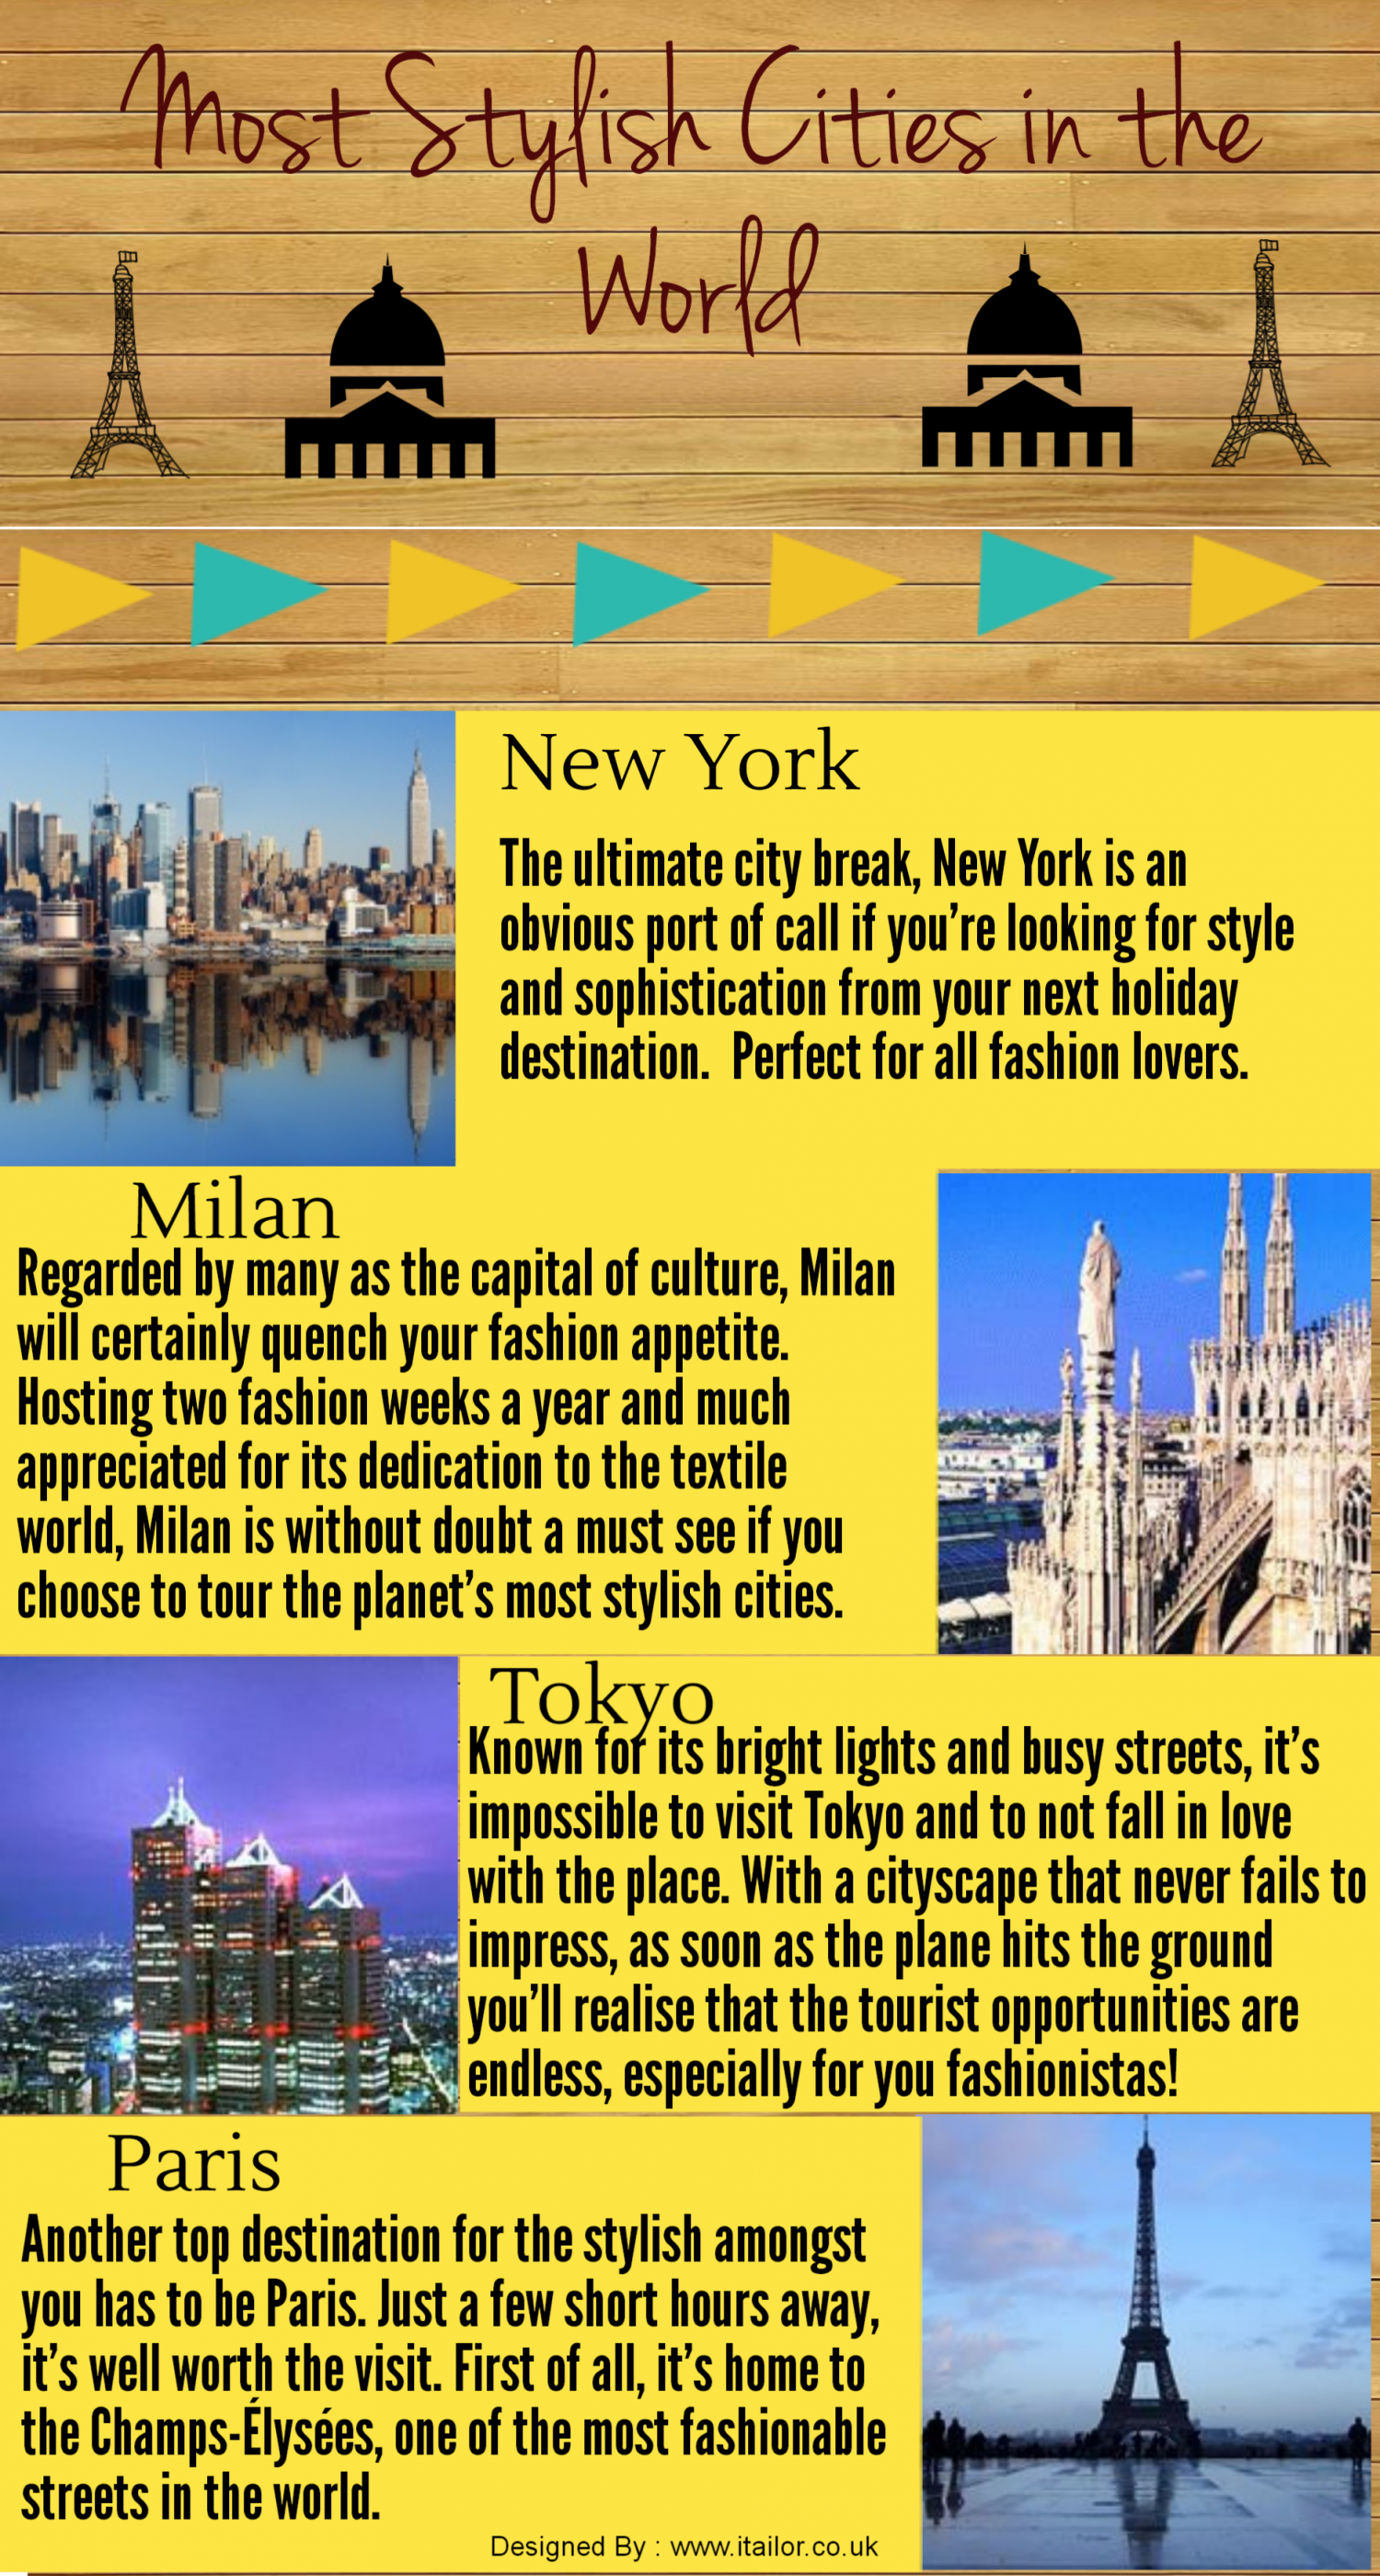 Most Stylish Cities in the World Infographic